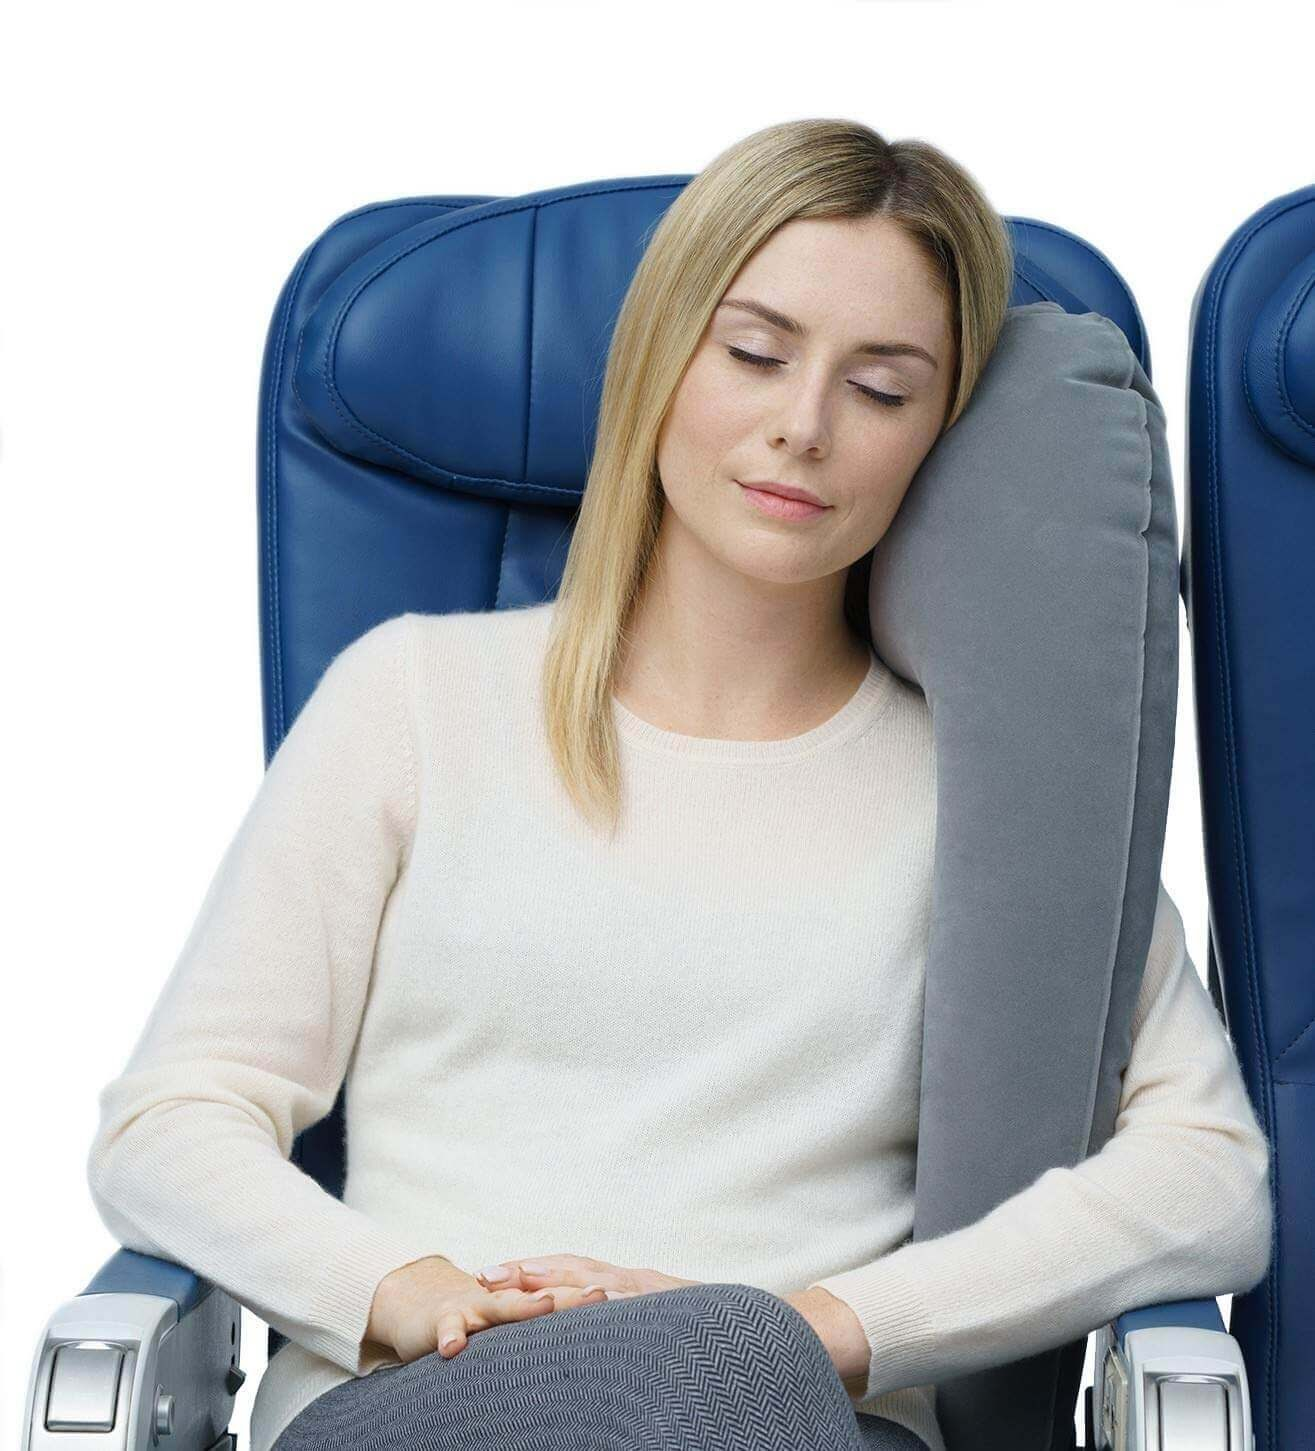 A woman sleeping on a plane with a full body pillow.